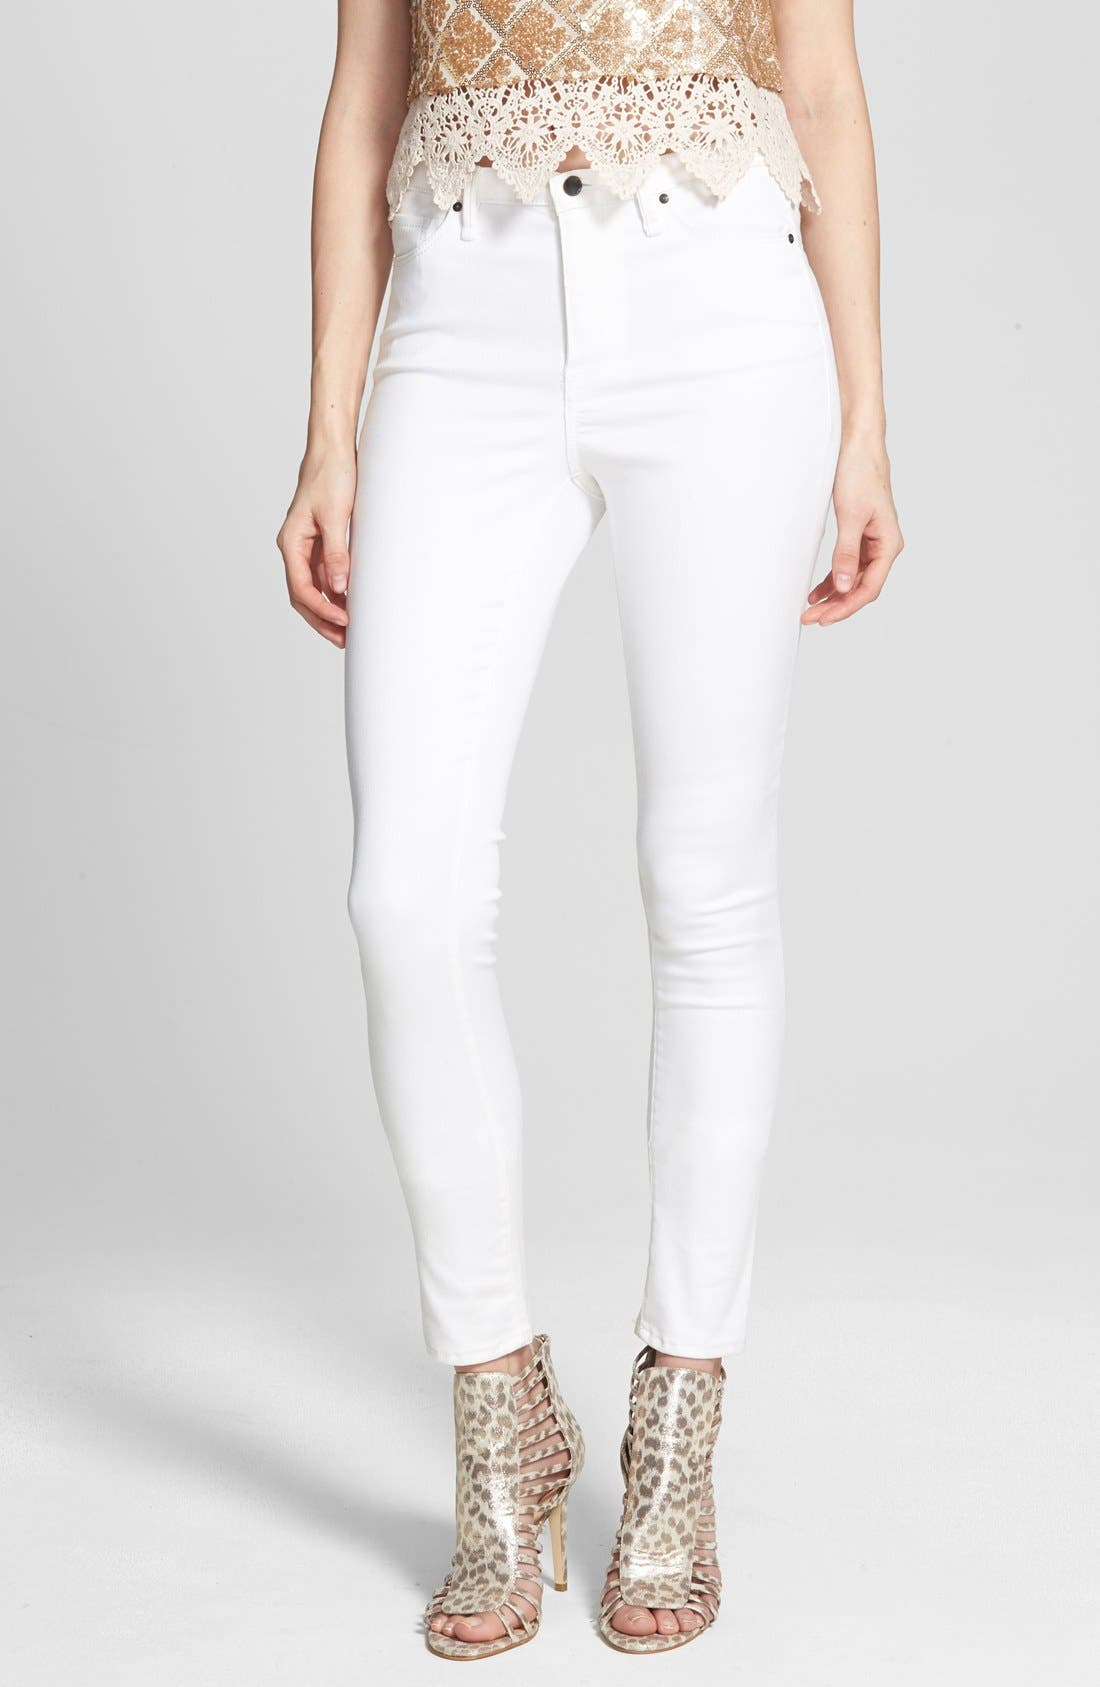 Main Image - Kiind Of 'Empower' High Rise Denim Leggings (Rinse Silk Road)